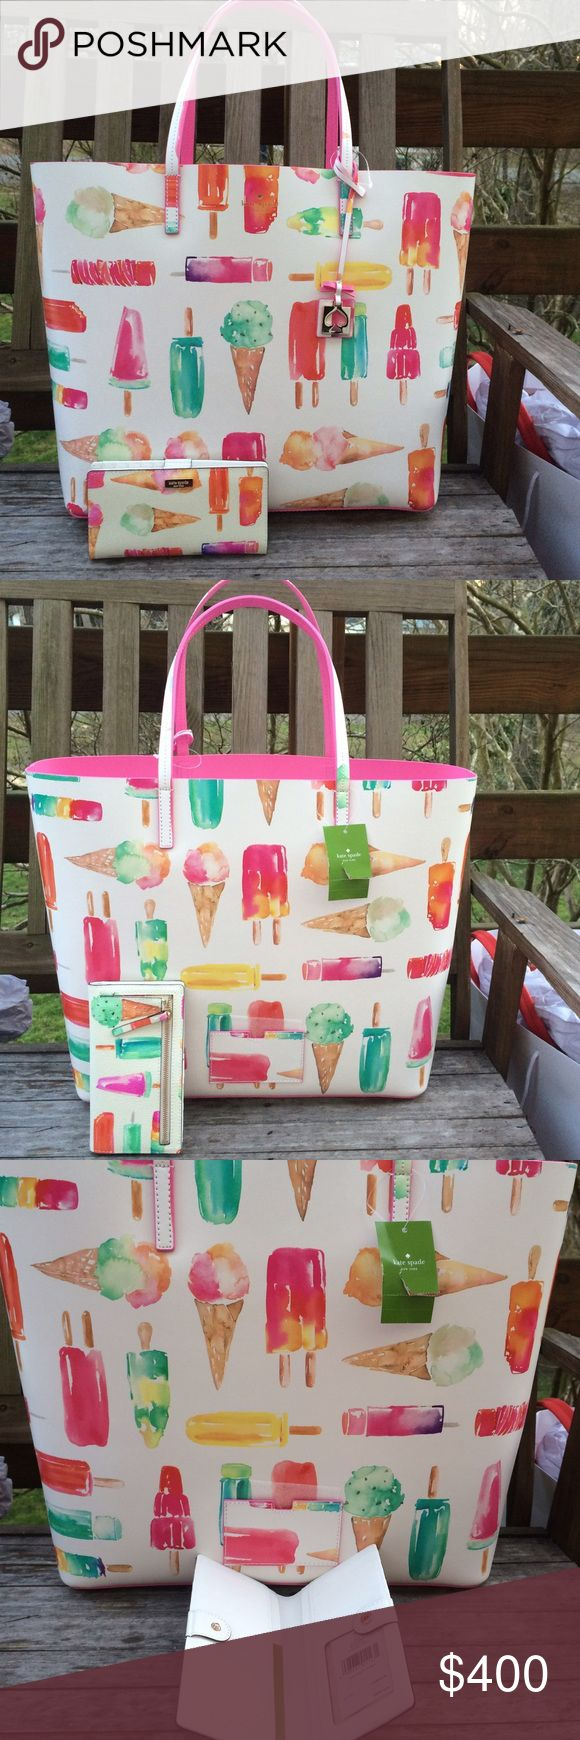 """🎀One Hour Sale🎀 FIRM Ice Cream Len Tote & Wallet Sale ends at 8:30 EST. New with tags. New release (1-2017), not priors that were smaller and on vinyl. Len - Flavor of the Month Popsicle and Ice Cream Tote printed on leather. Great for a laptop in addition to your other items. Interior large zip pocket, one slip pocket. Lined on interior bottom. Protective Feet on the bottom of bag 13.5""""H x 18""""W x 6.5"""". Dual handles with 8"""" drop Includes the matching Stacy wallet. Matching iPhone 7 case is…"""